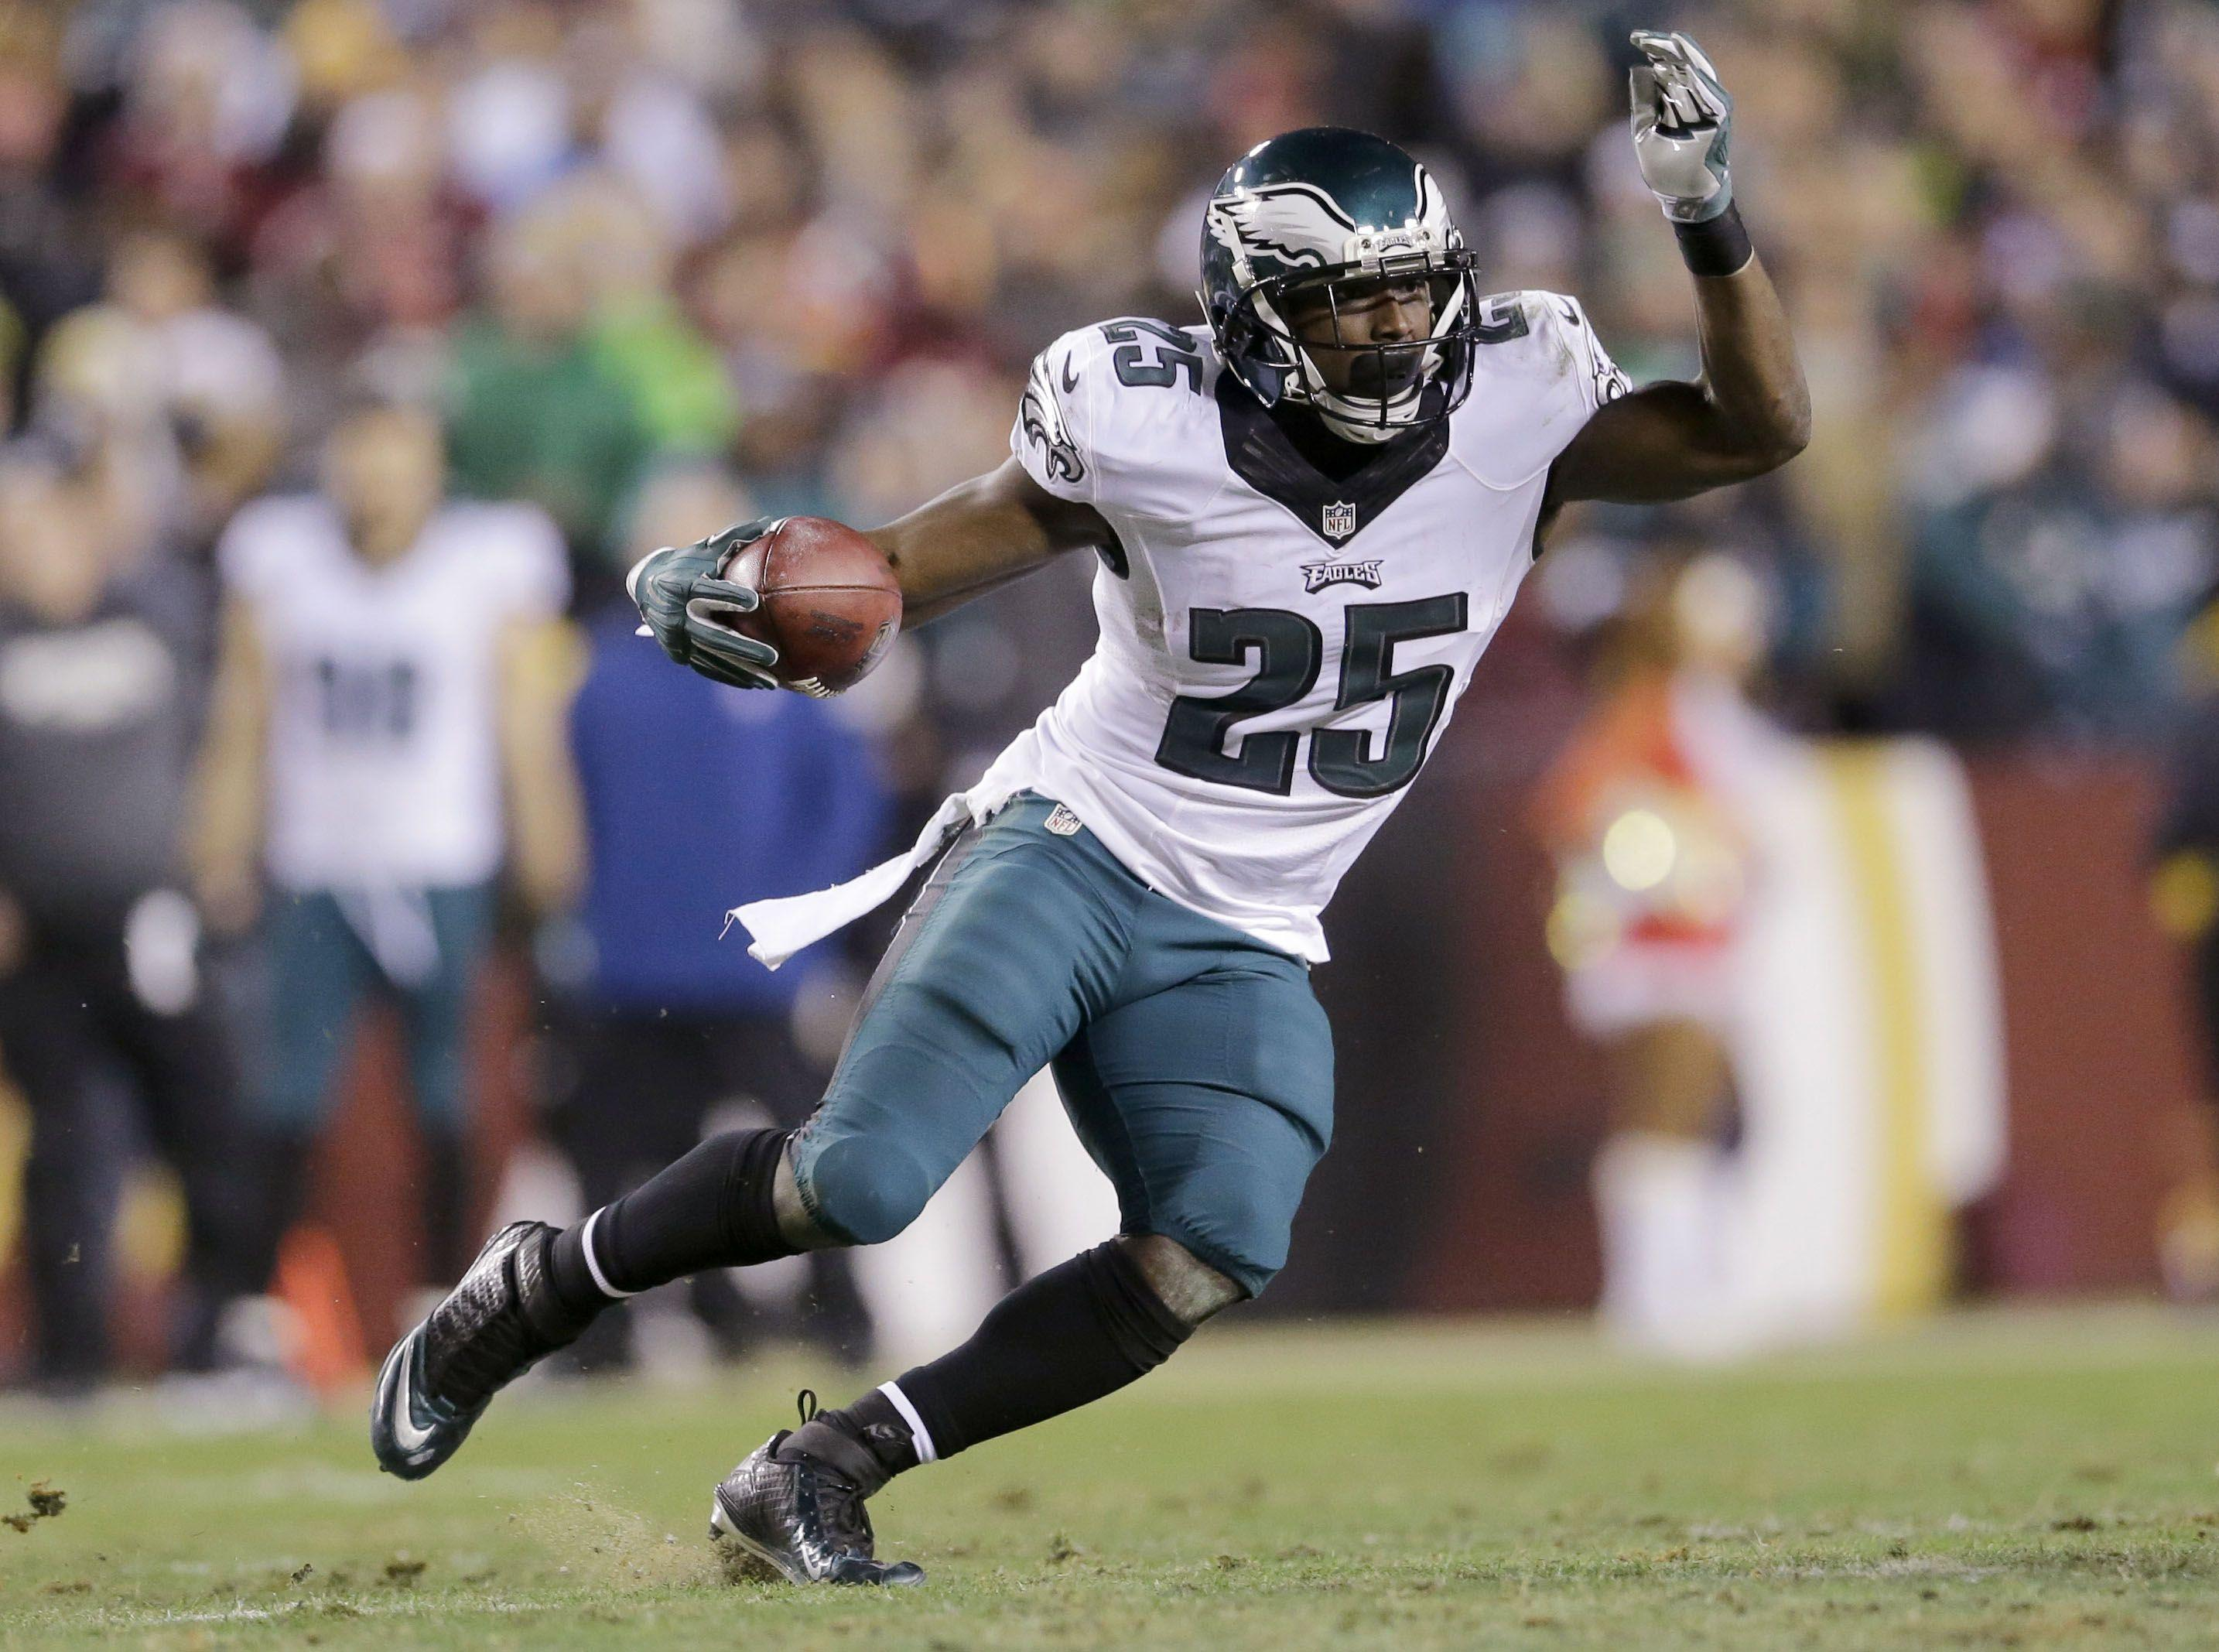 Eagles to trade running back McCoy to Buffalo for Alonso